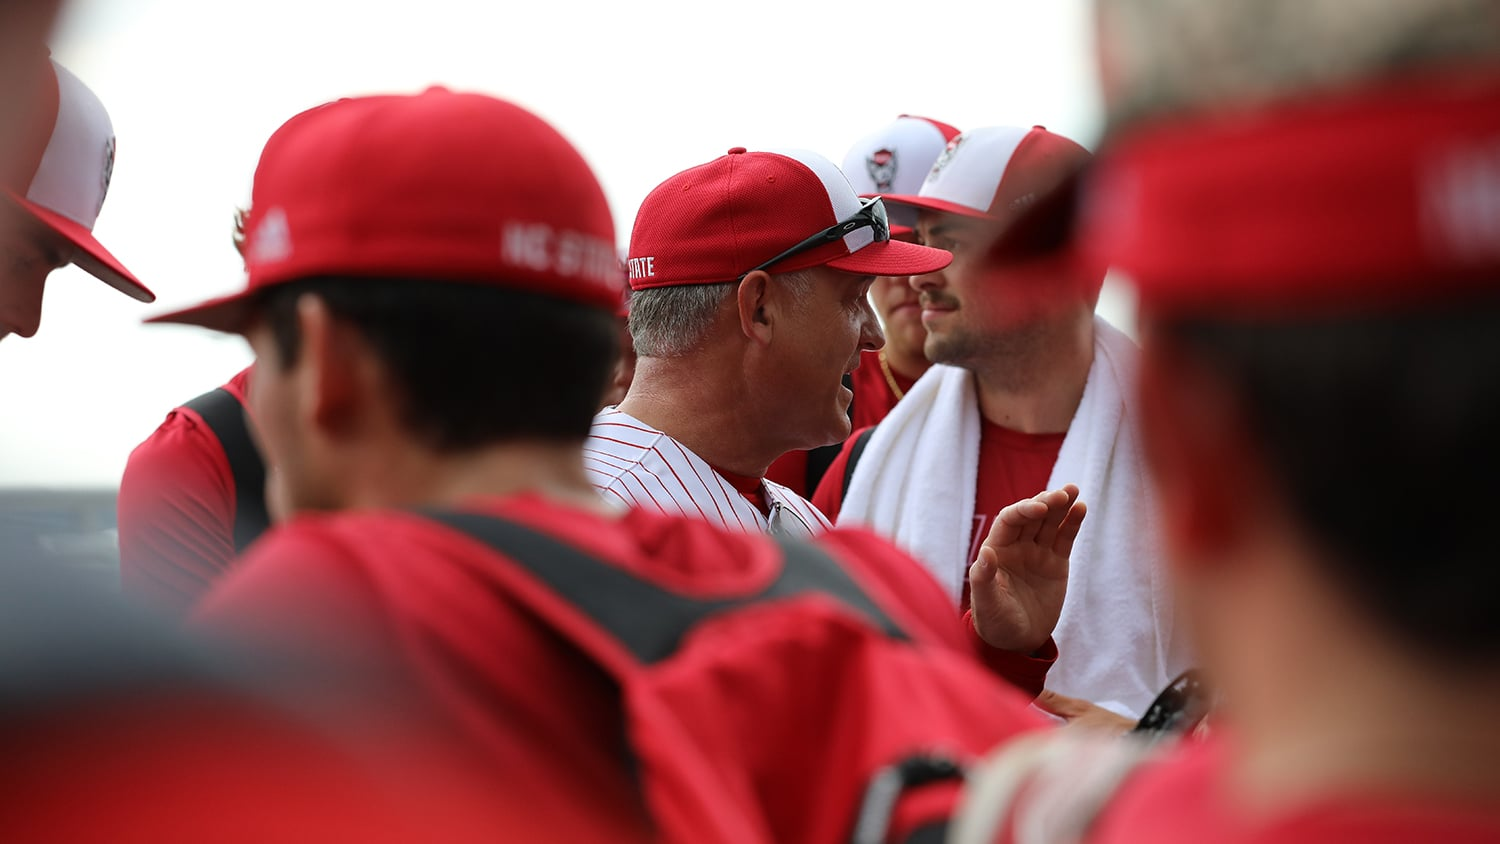 Coach Elliott Avent at practice in Omaha, surrounded by baseball players.